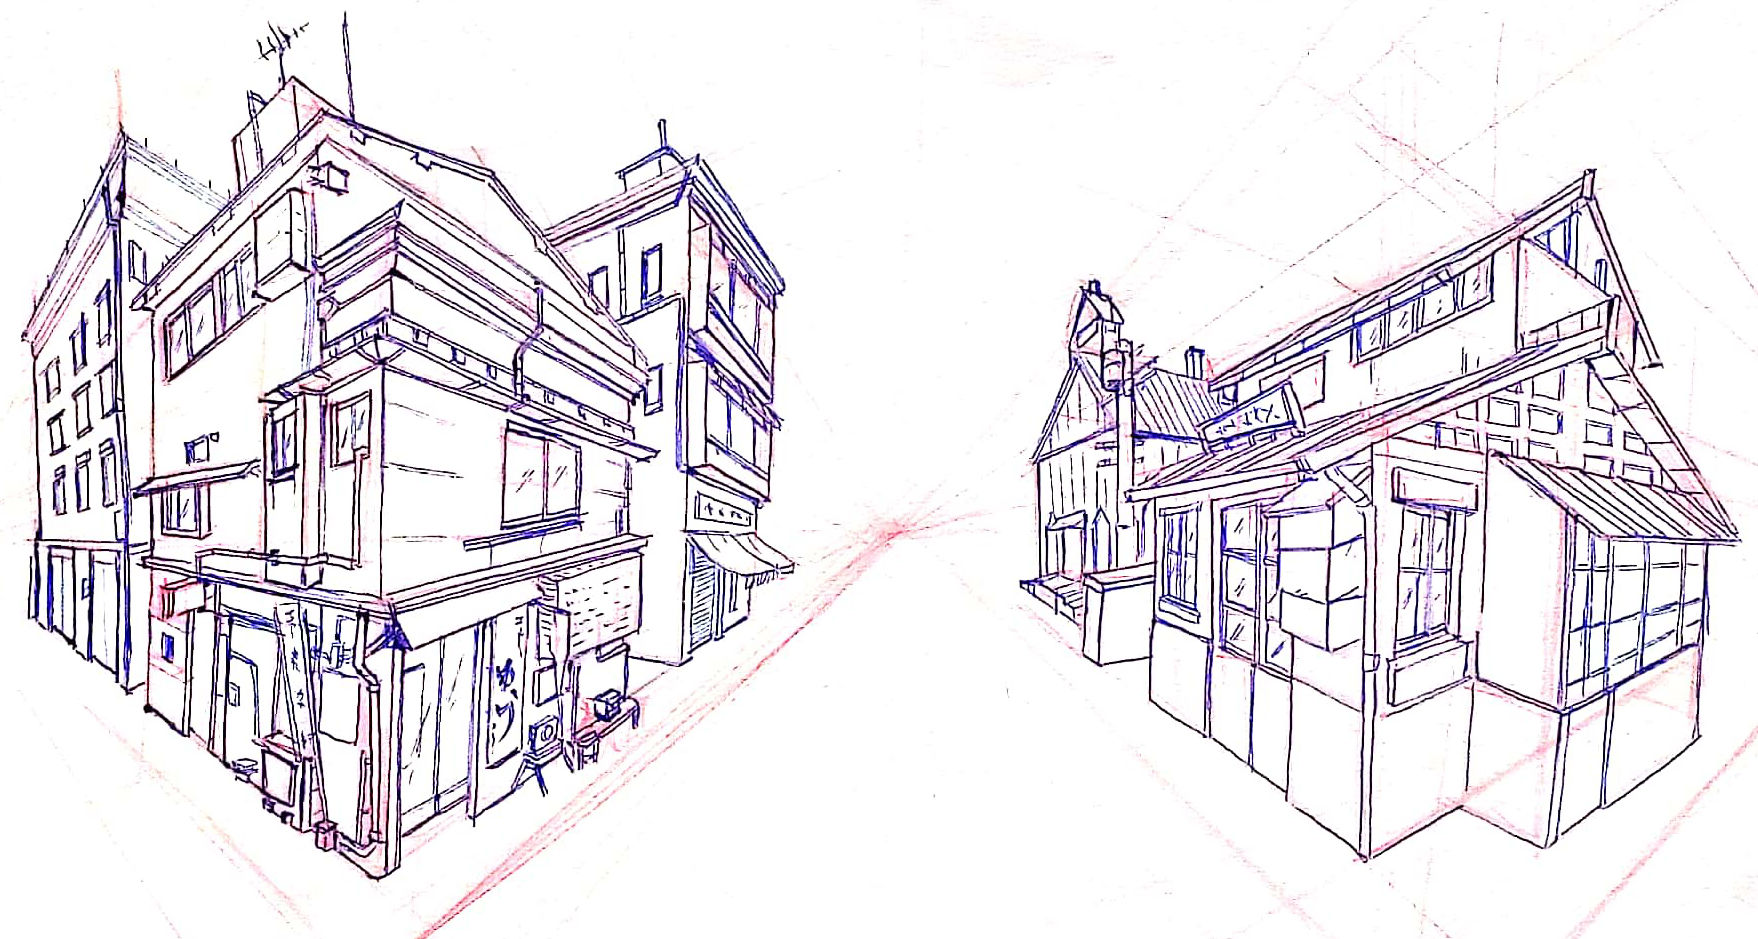 perspective drawing 3 e1581408477486